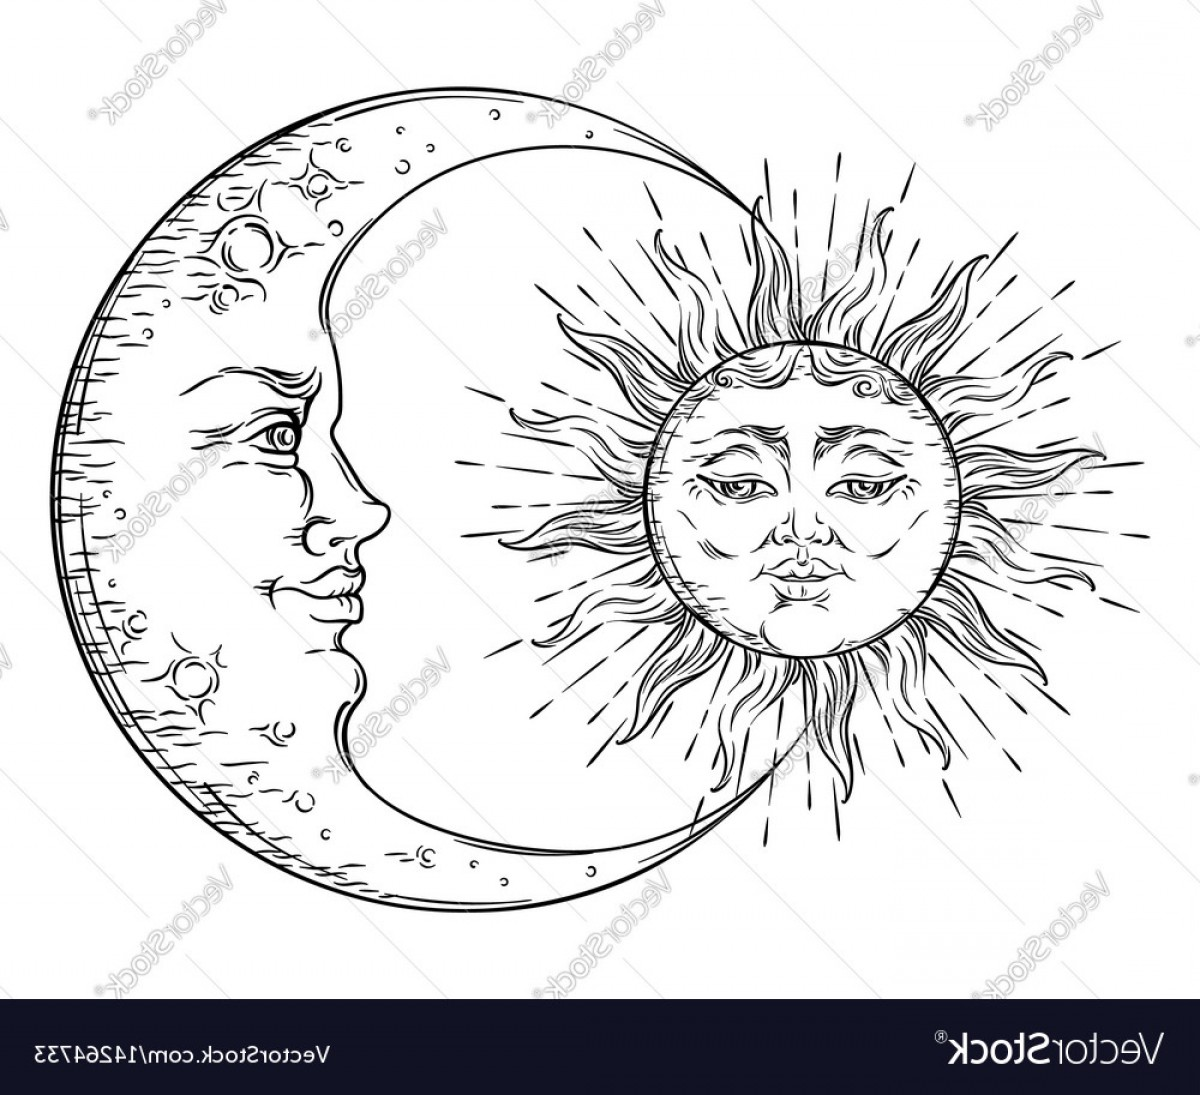 Vintage clipart sun moon black and white download Antique Hand Drawn Art Sun And Crescent Moon Vector   SOIDERGI download